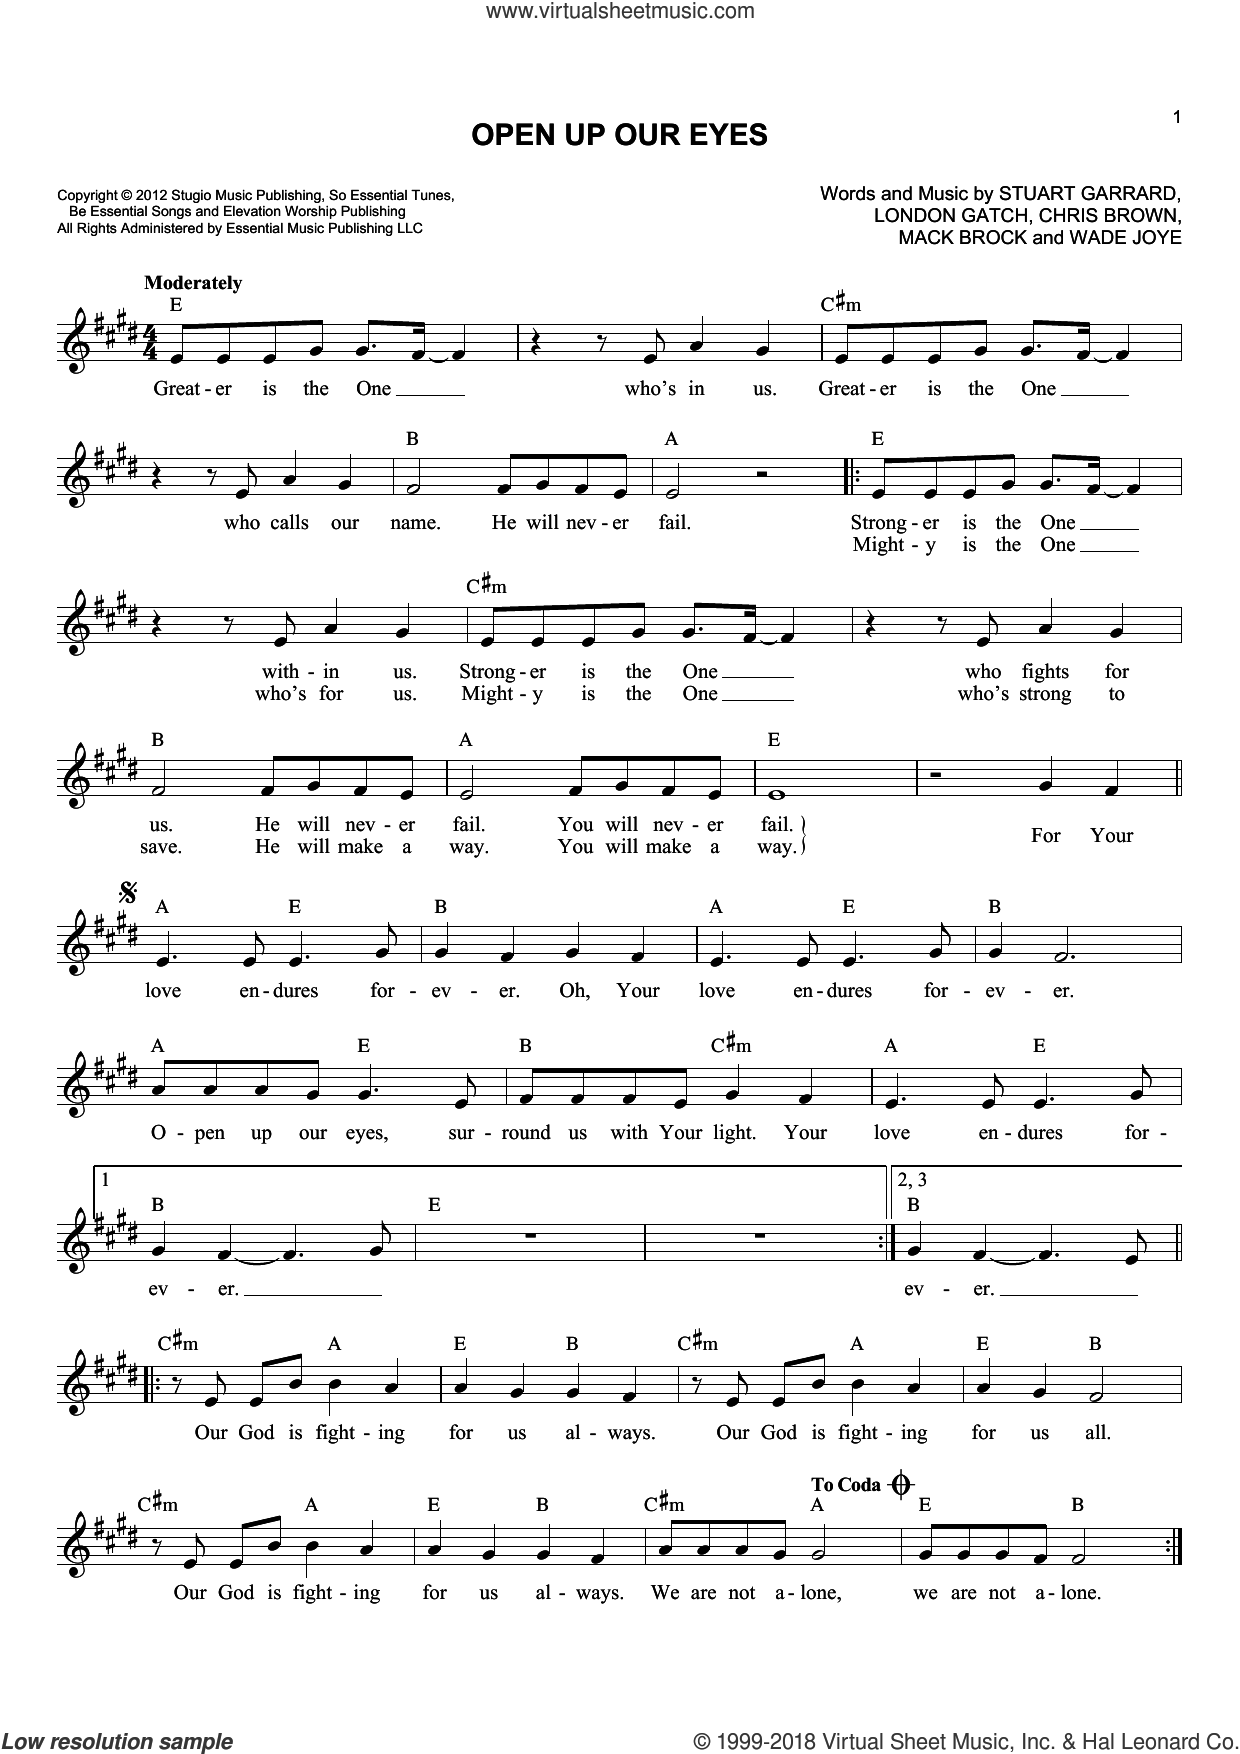 Open Up Our Eyes sheet music for voice and other instruments (fake book) by Elevation Worship, Chris Brown, London Gatch, Mack Brock, Stuart Garrard and Wade Joye, intermediate skill level